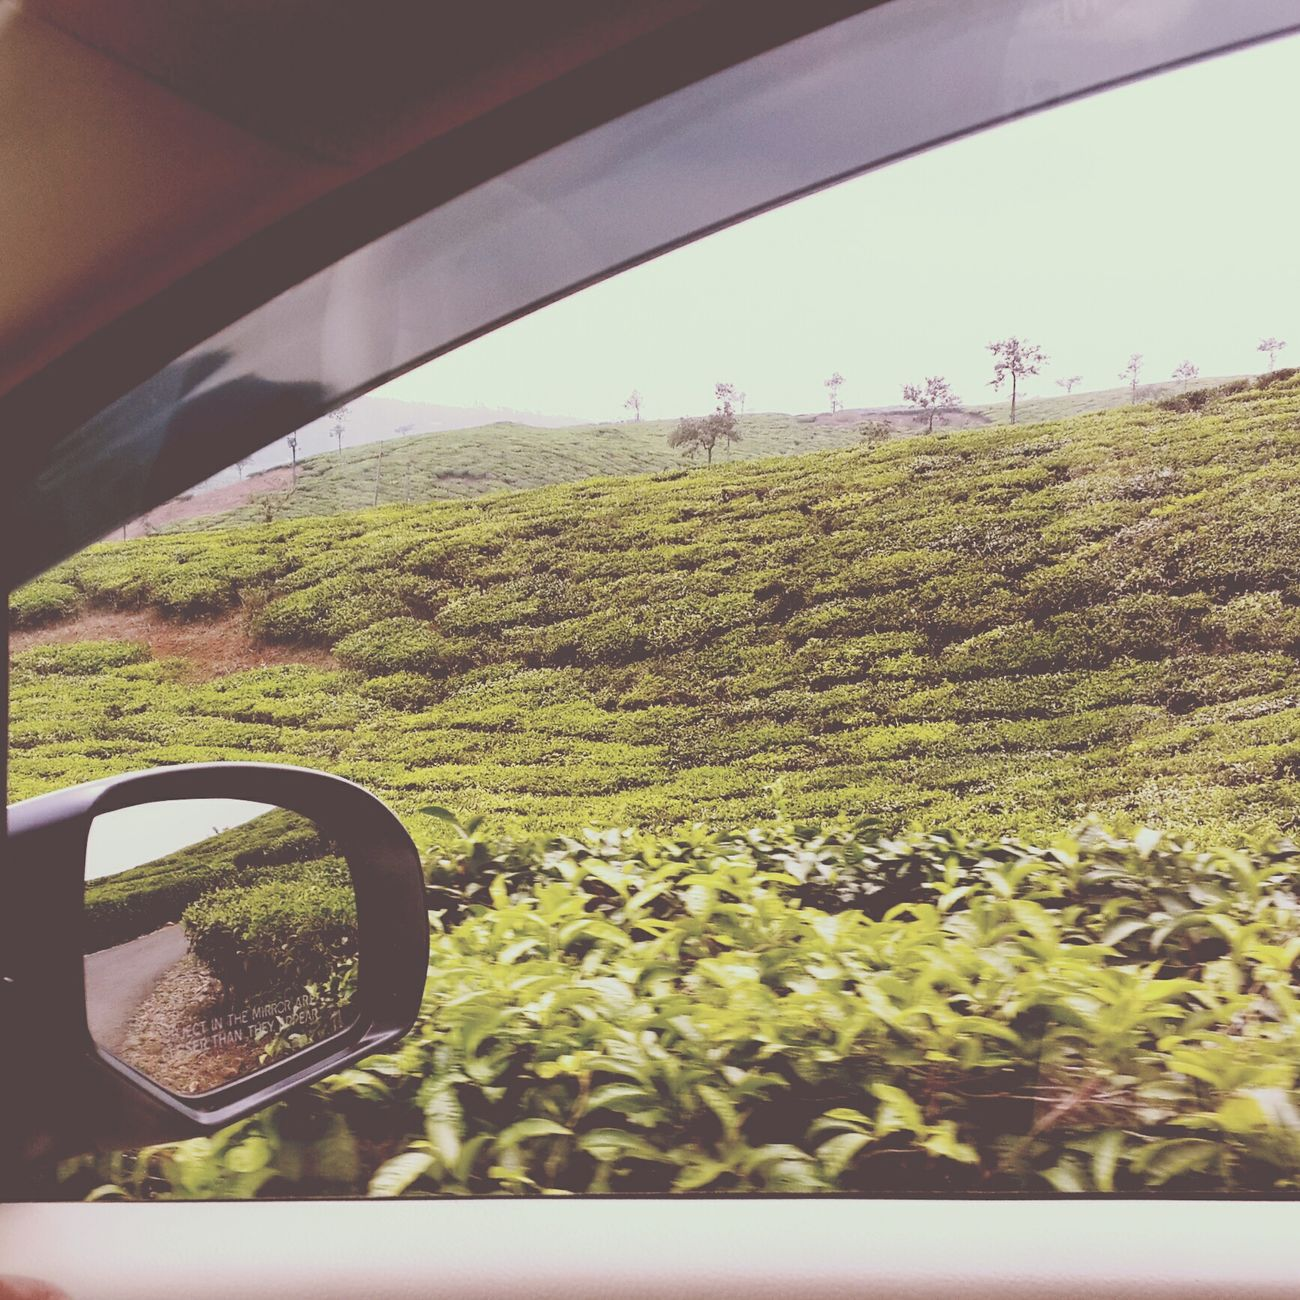 Munnar Kerala_tourism Kerala India Teaestate GodsOwnCountry Nature Photography Natureporn PhonePhotography Roadtrip Oneplusone Phonography  Secondeyeemphoto Epicness Tranquility